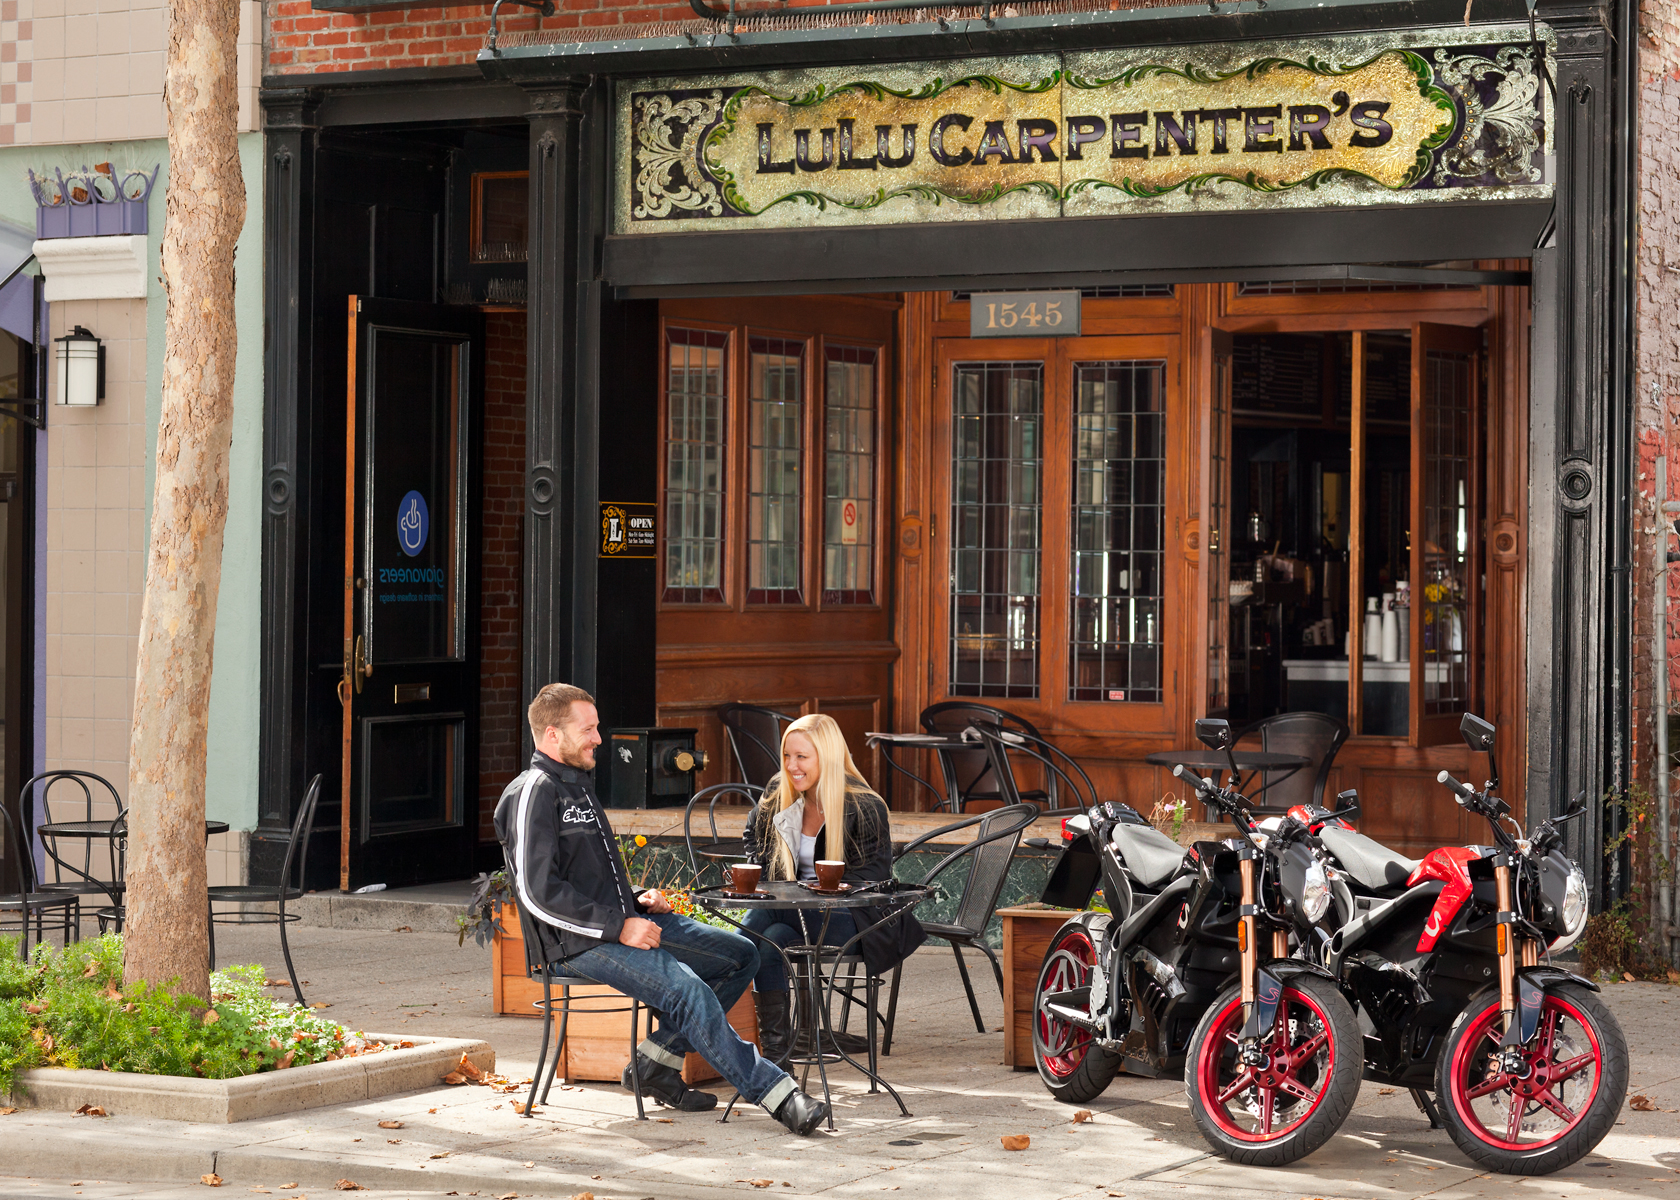 2012 Zero Motorcycles: LuLu Carpenter's Cafe, Santa Cruz